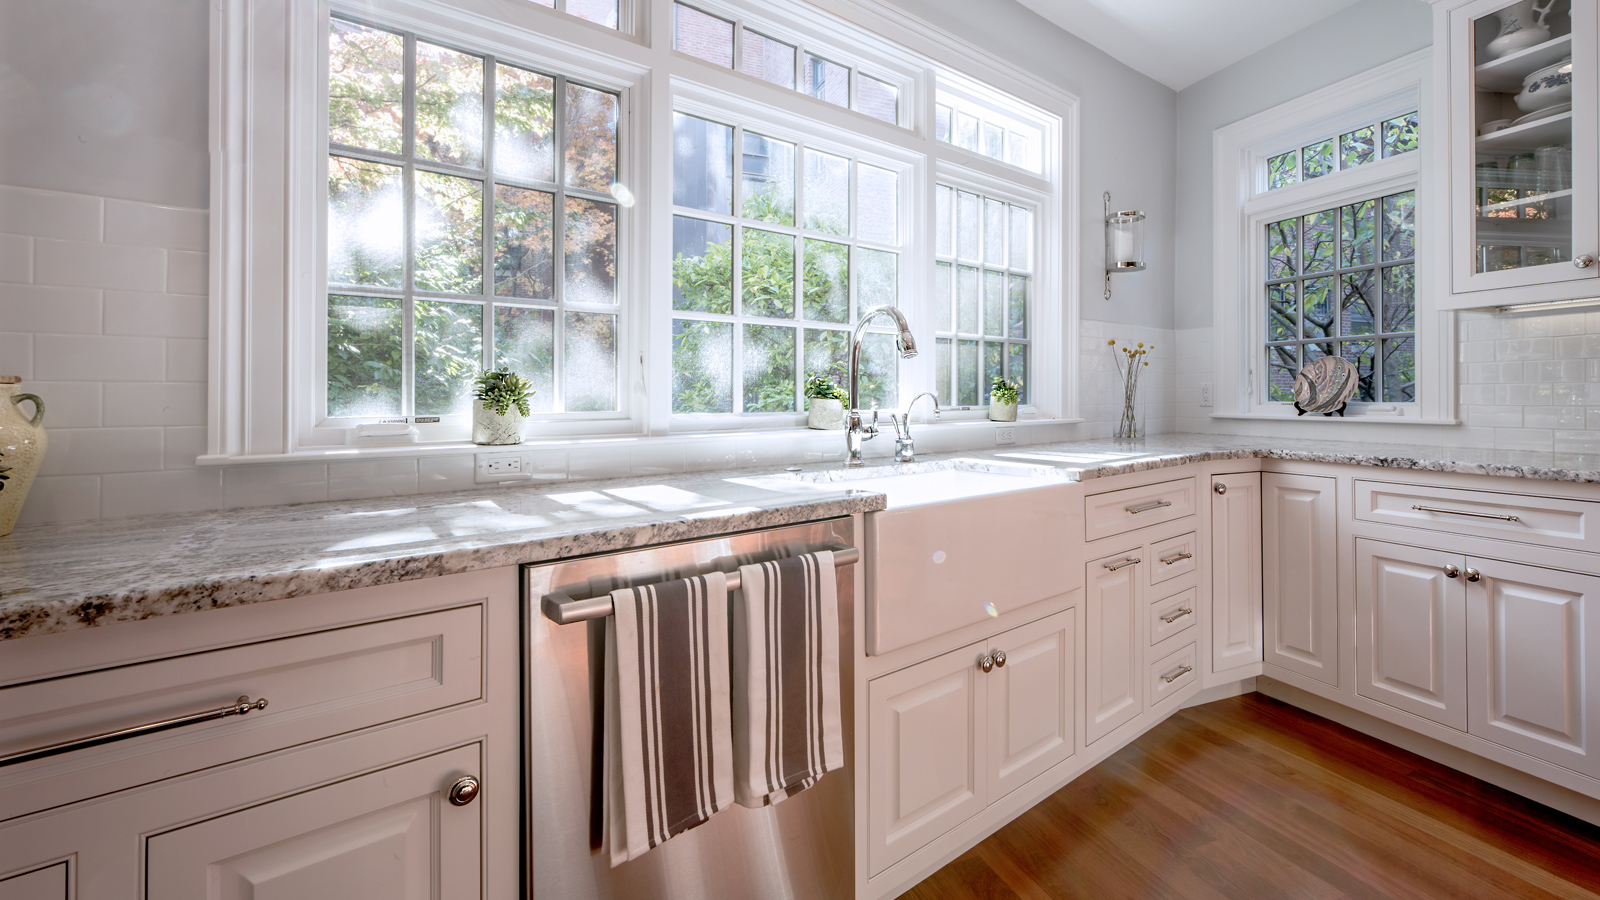 CEH Beacon Hill Kitchen Sink